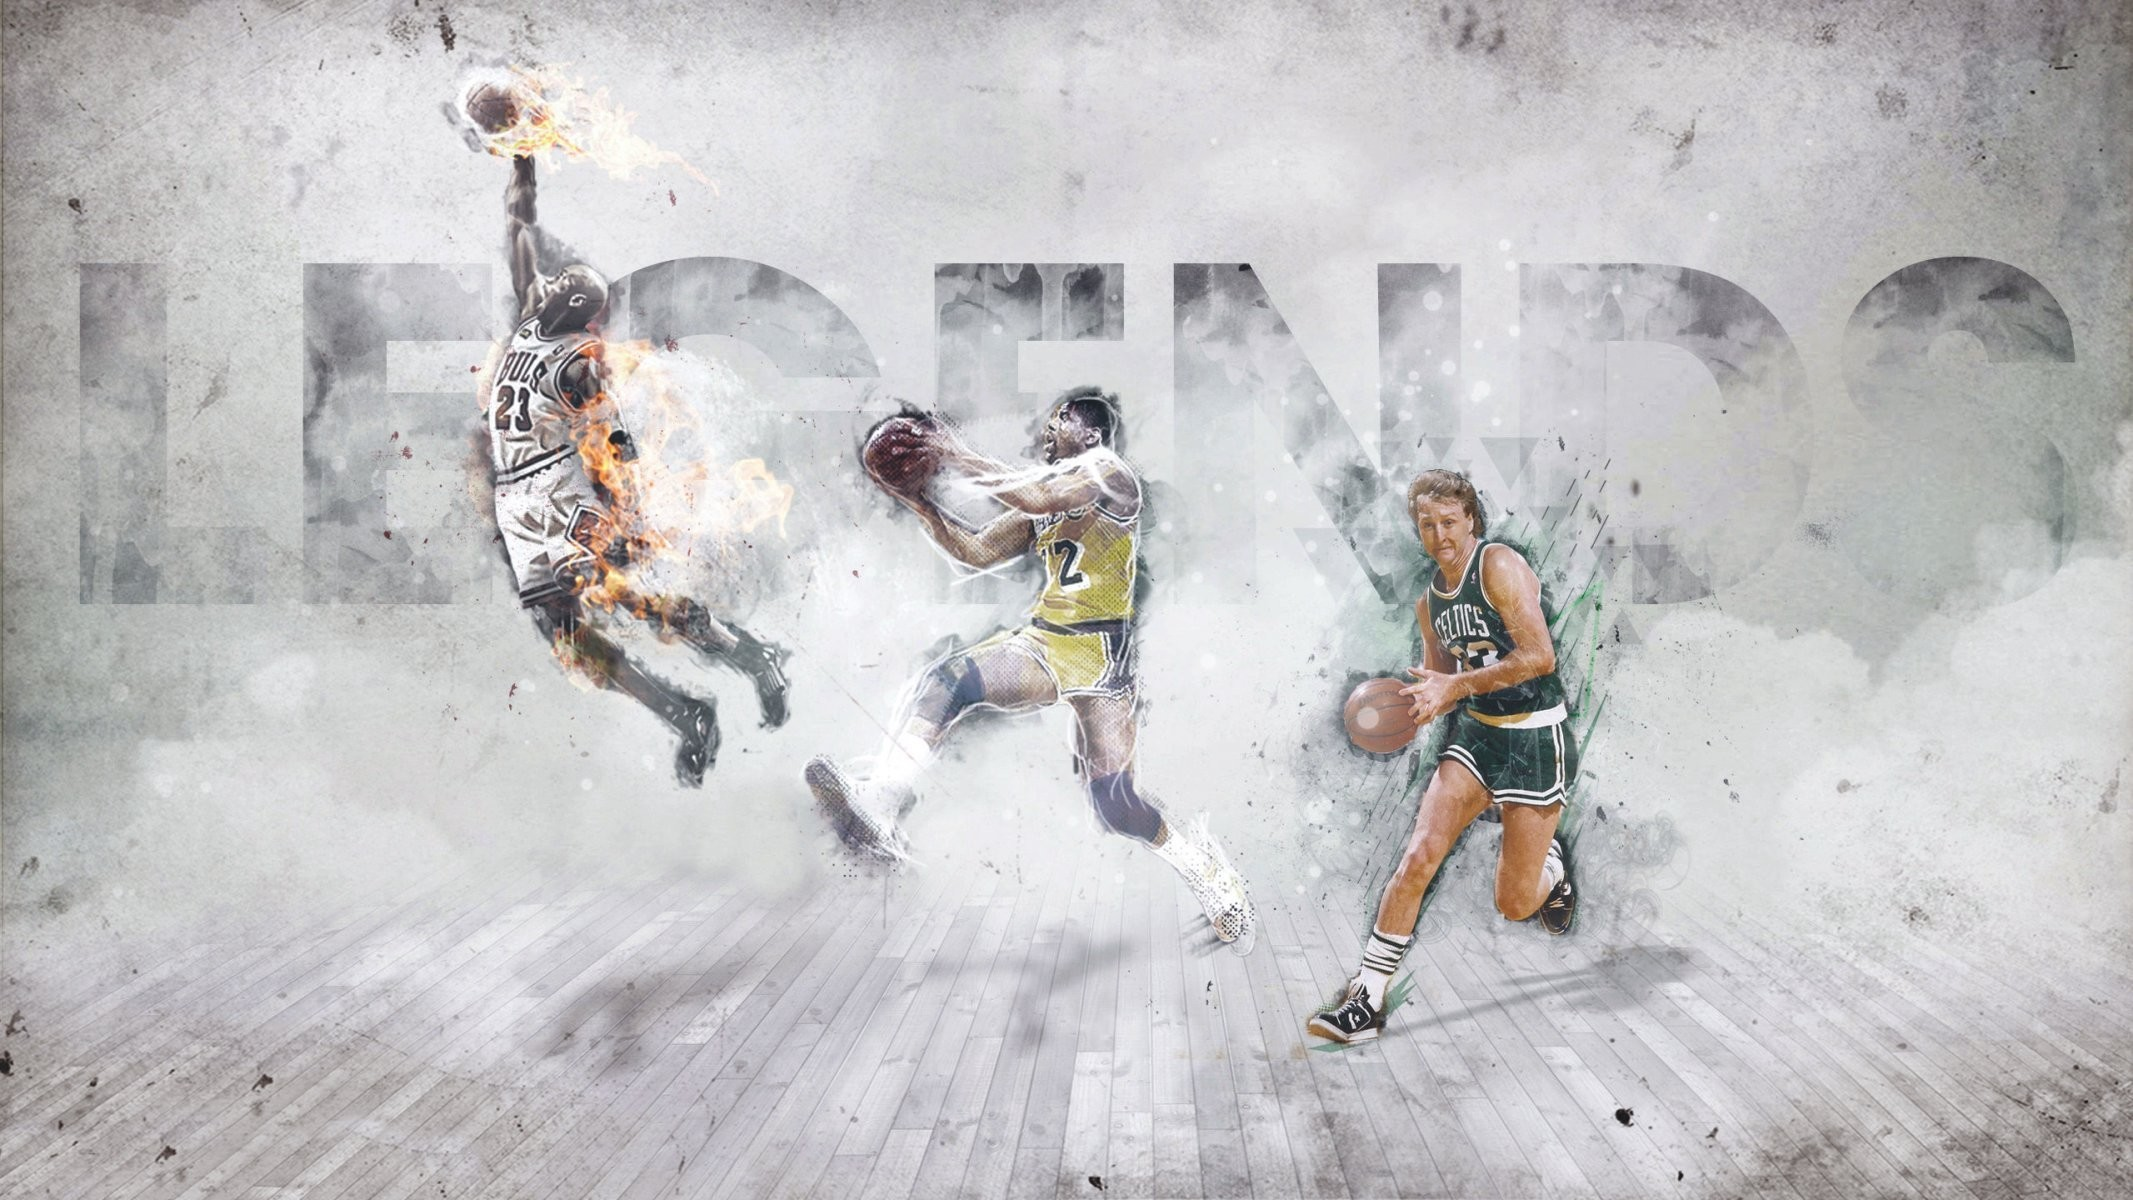 2133x1200 michael jordan magic johnson larry bird boston celtics chicago bulls los  angeles lakers legends basketball sports